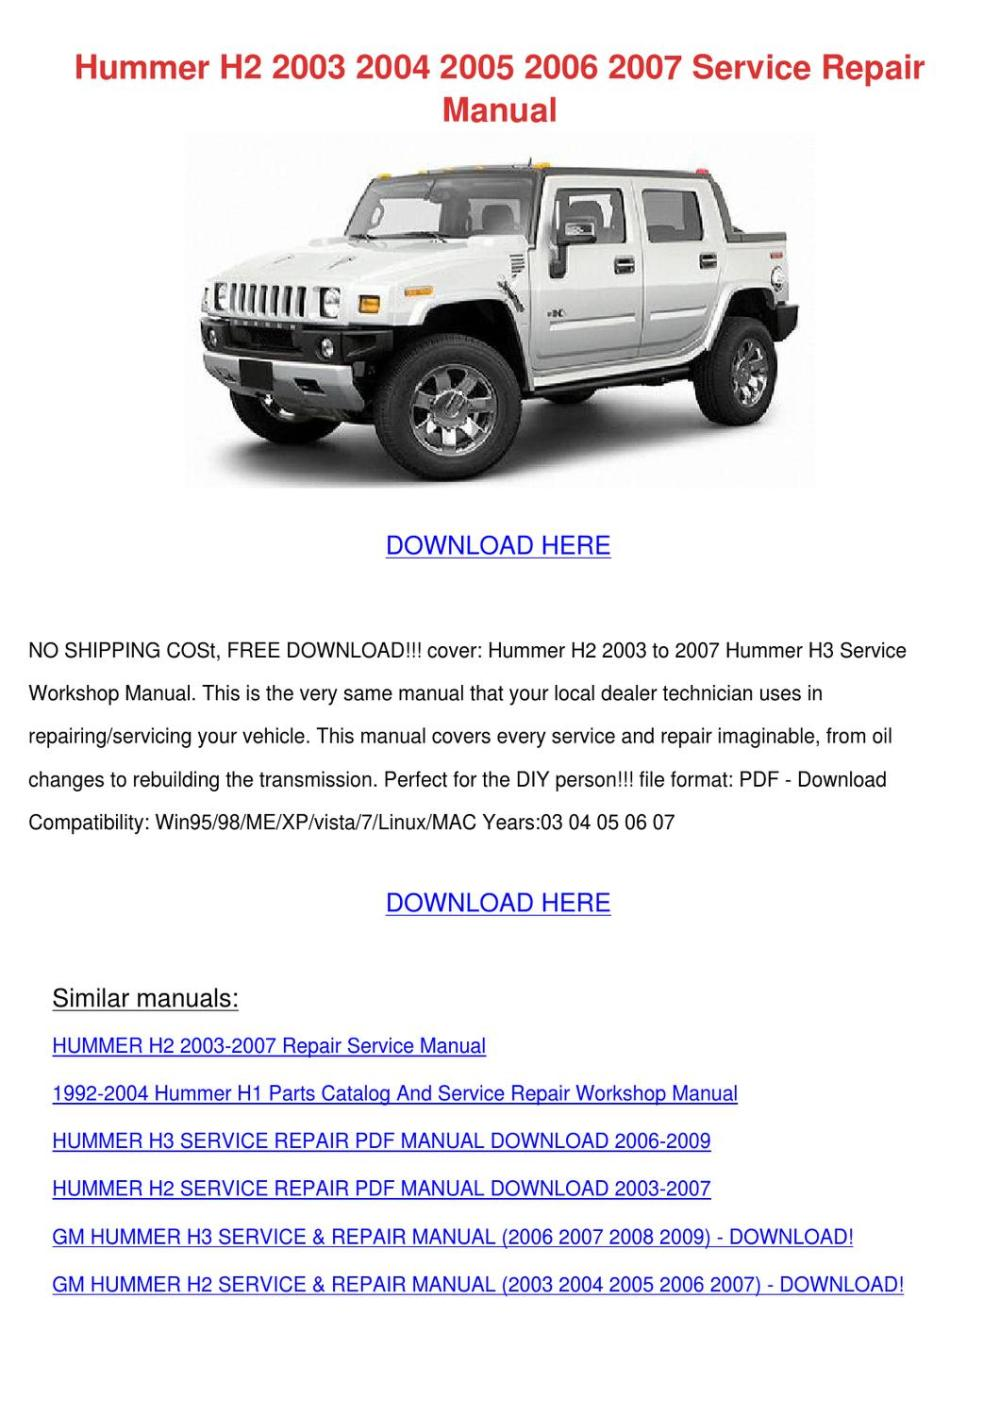 medium resolution of hummer h2 2003 2004 2005 2006 2007 service re by keirahodge issuu